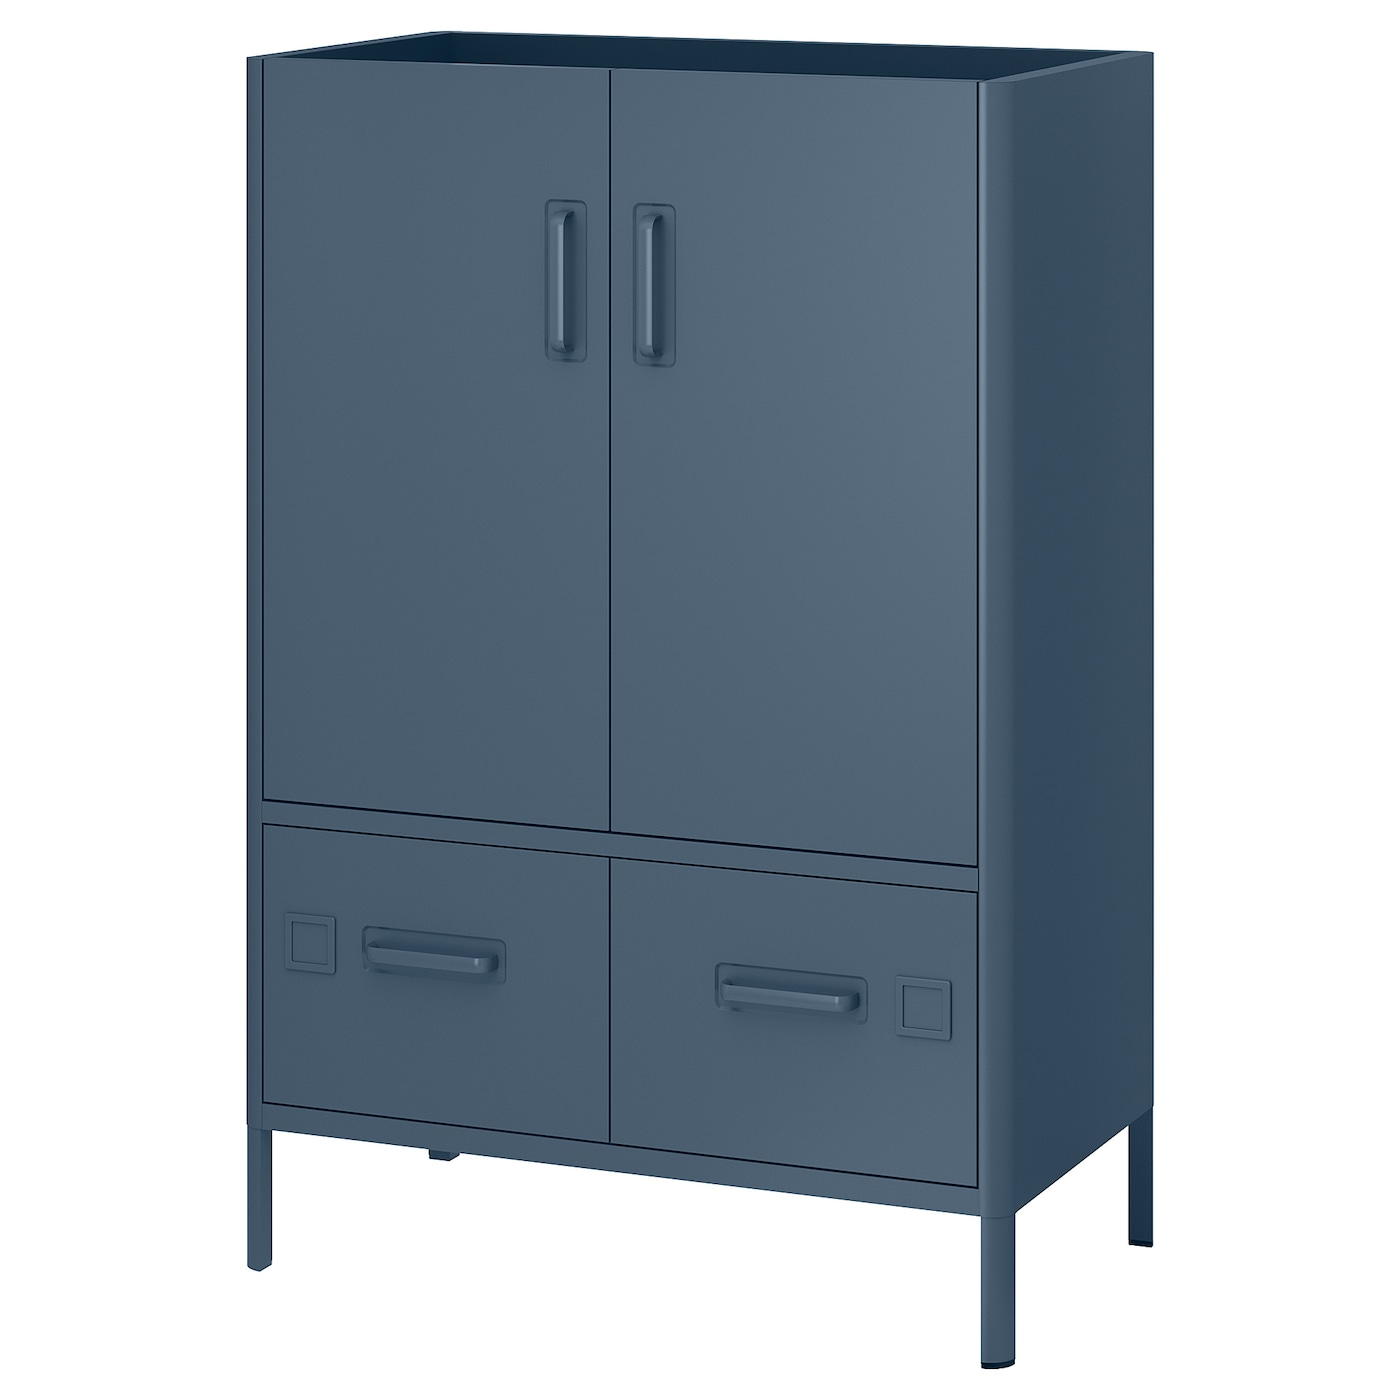 Idasen Cabinet With Doors And Drawers Blue 31 1 2x18 1 2x46 7 8